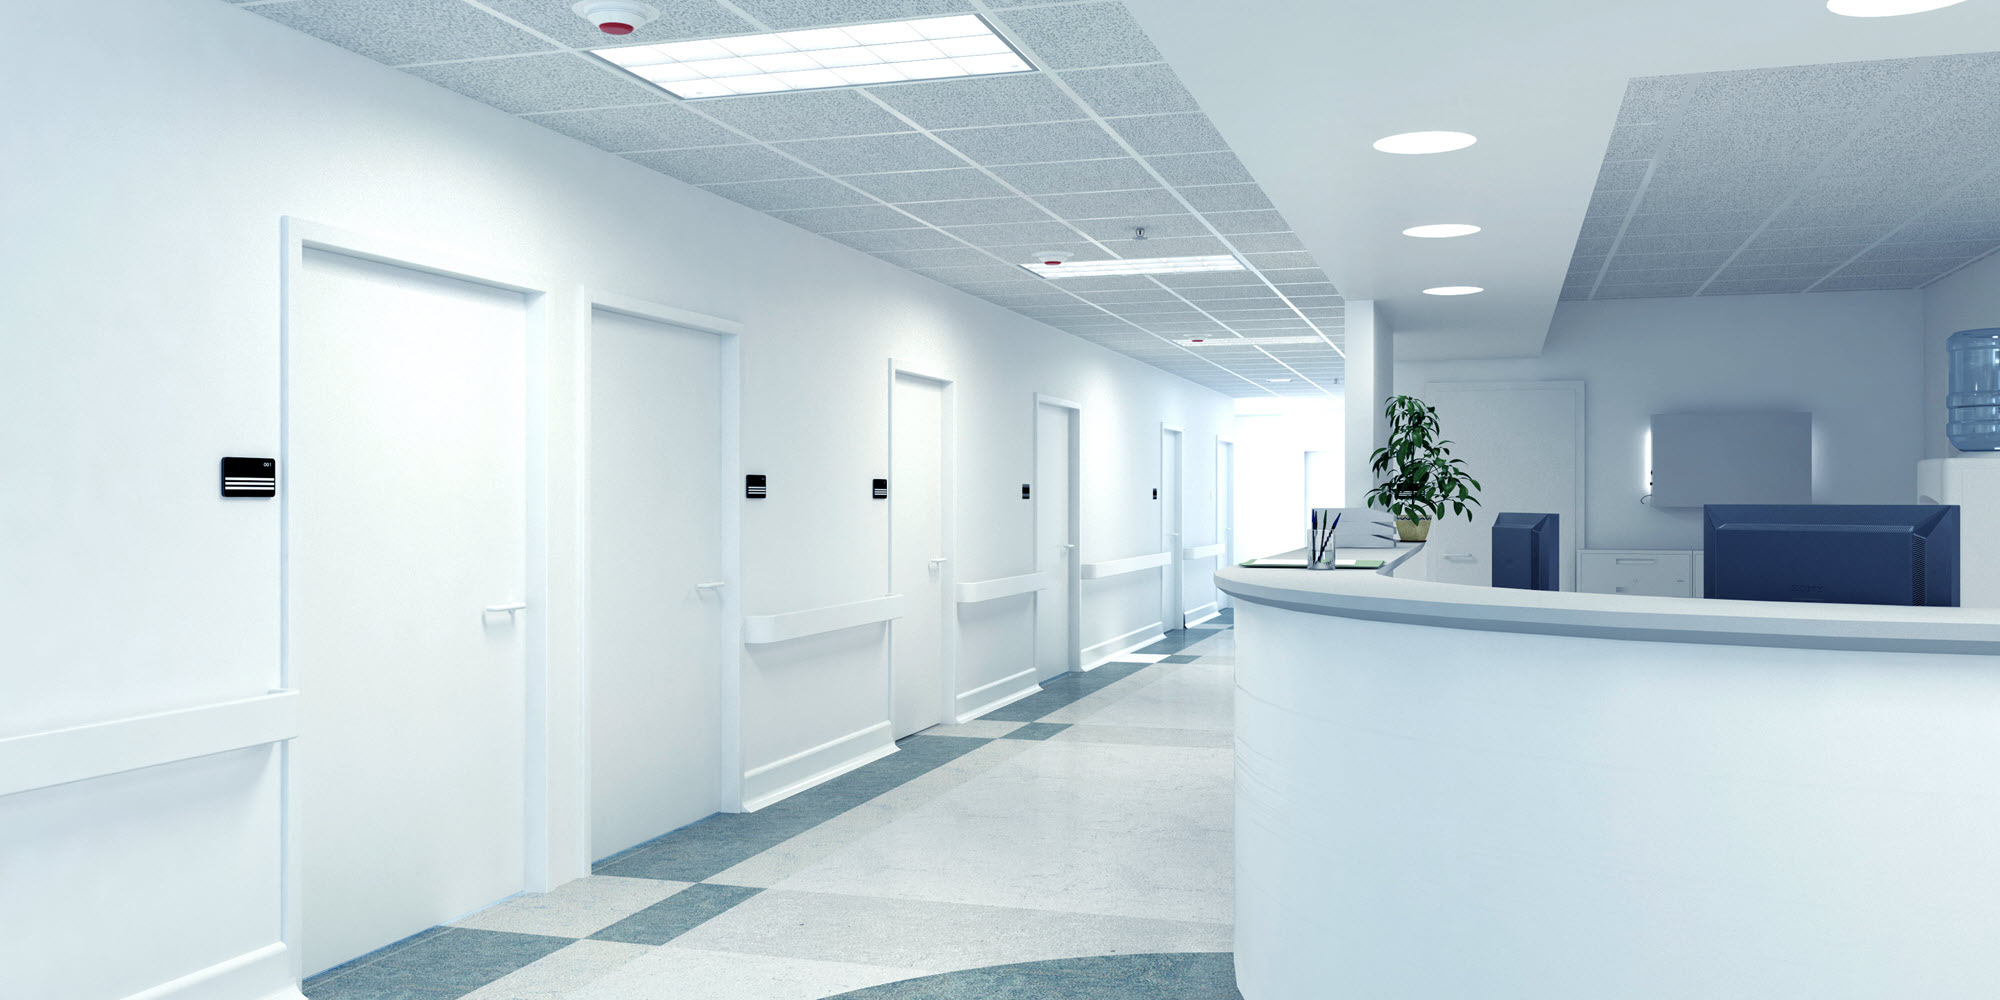 Automatic doors in hospital setting.